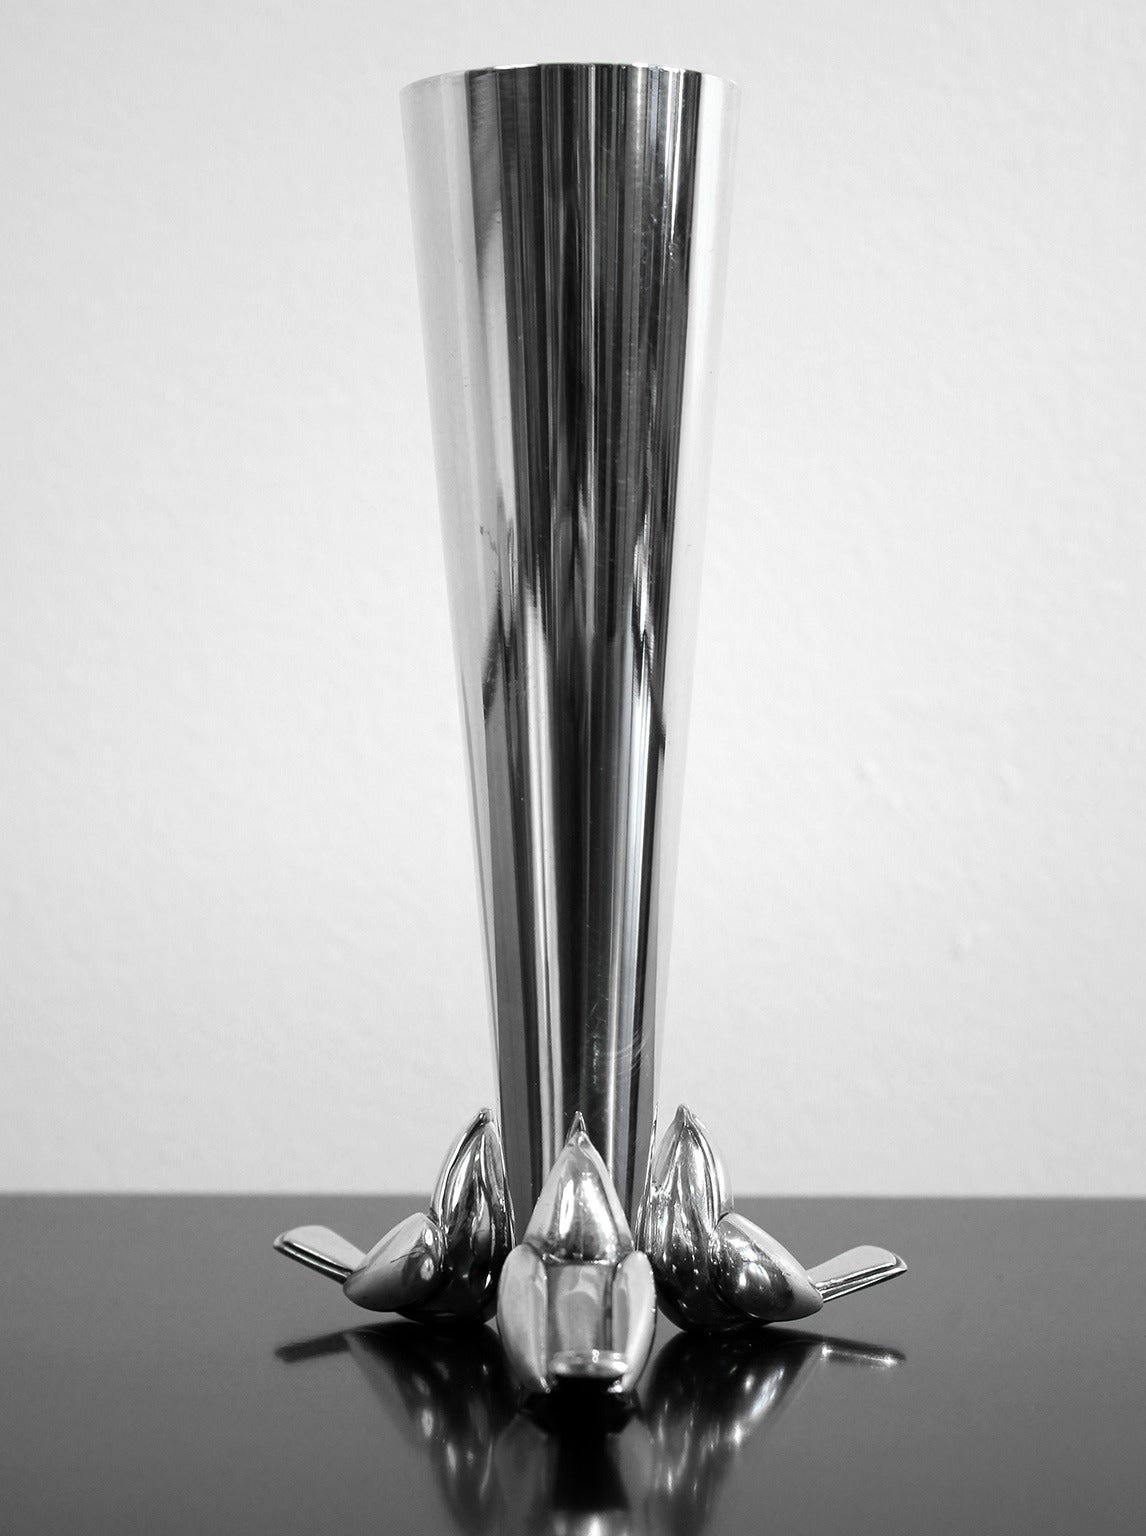 Silver plated bud vase with a trio of stylized bird figures at the base by Christofle.